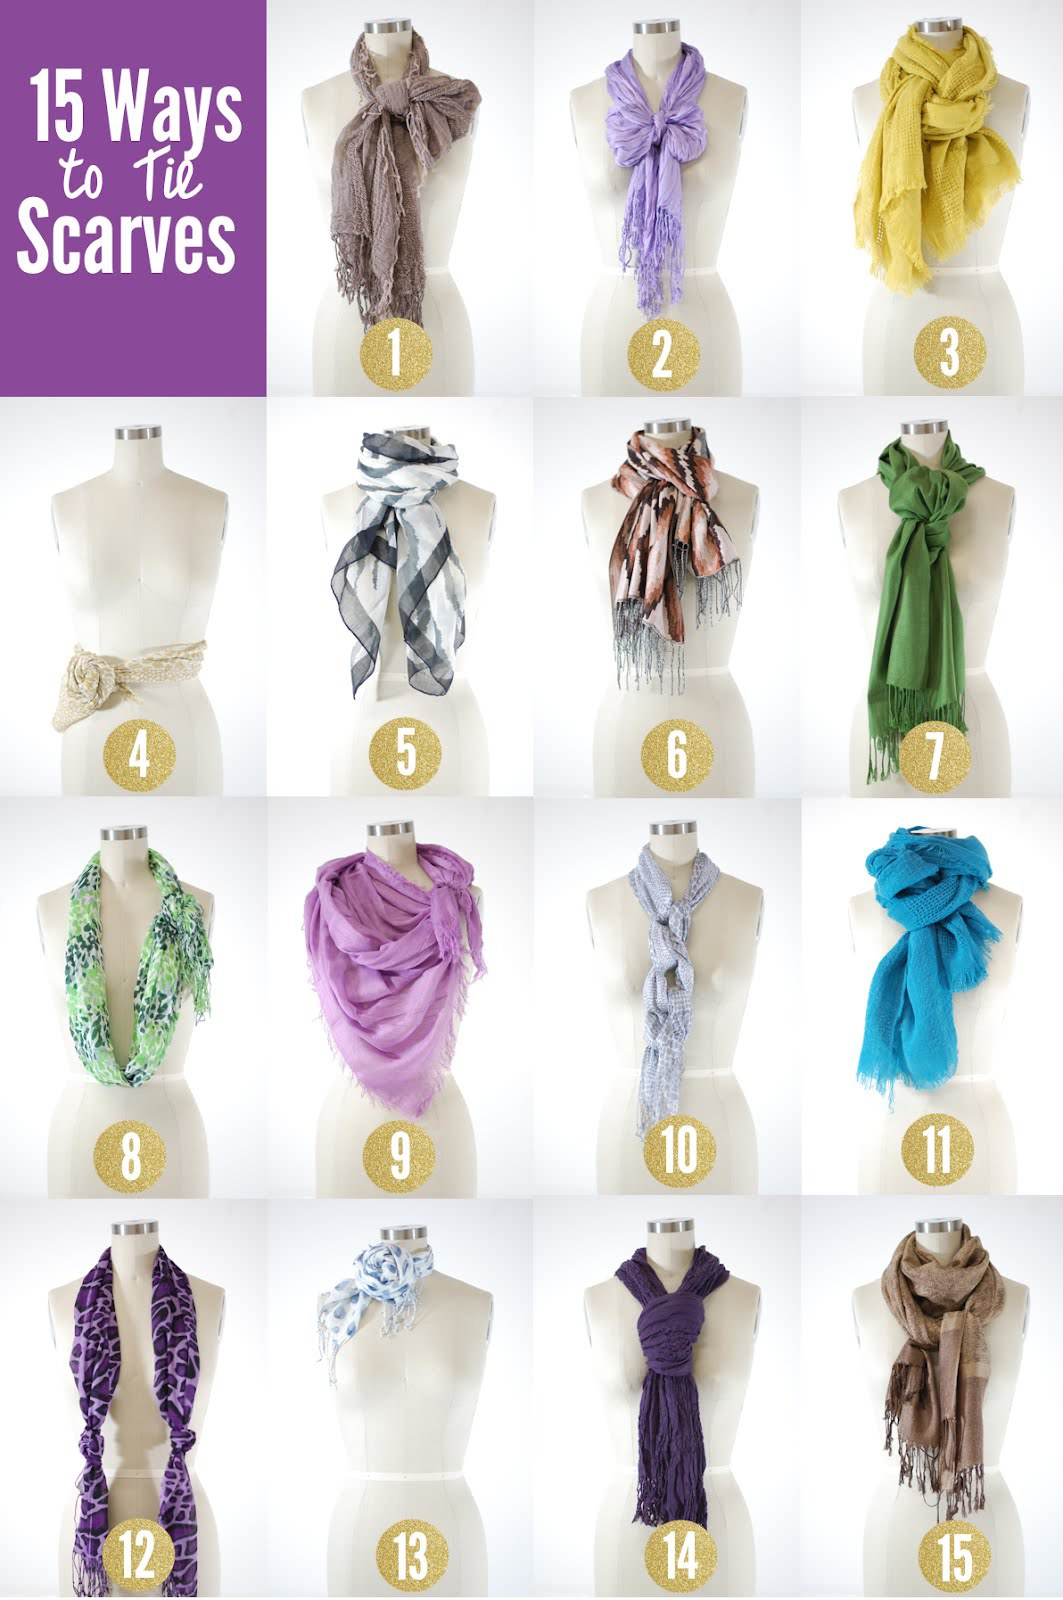 Easy Tie Dye Tips And Step By Step Instructions: 15 Chic Ways To Tie A Scarf